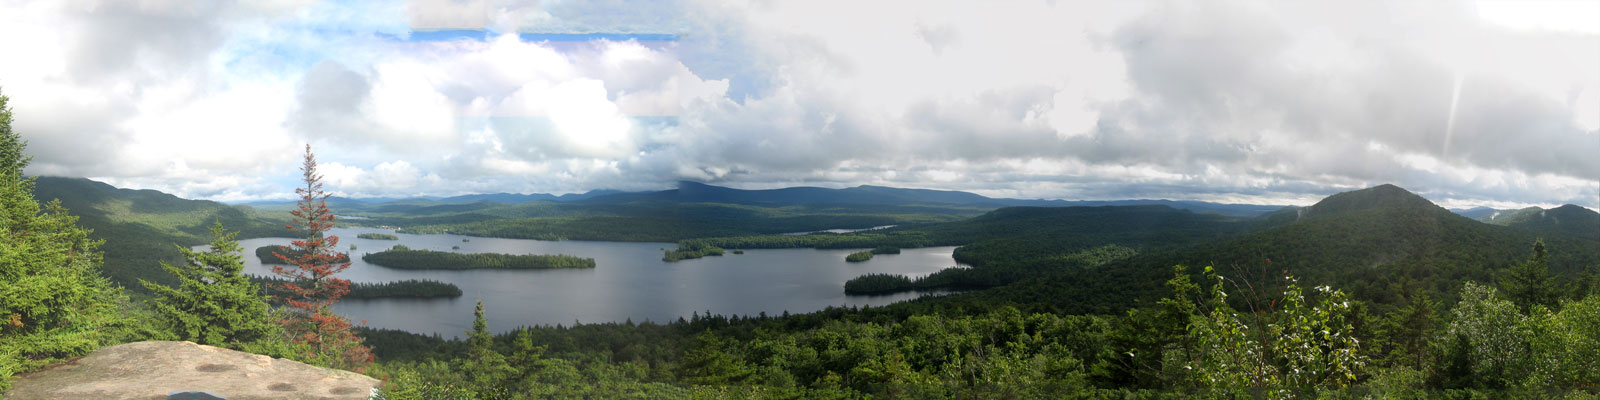 Blue Mountain Lake in the Central Adirondack Region as seen from seen Castle Rock